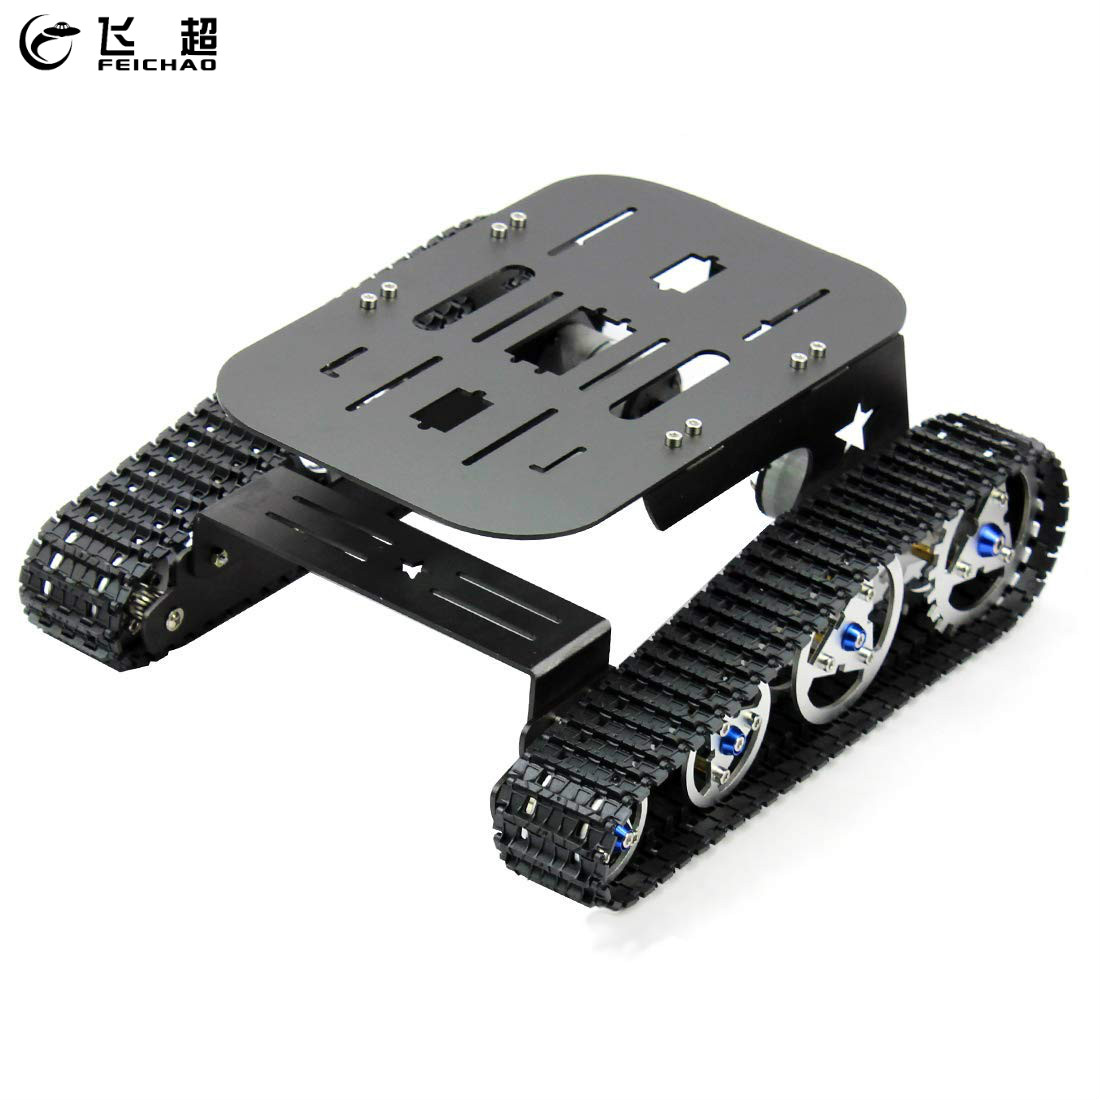 Assembled Obstacles Crossing Robot Intelligent Robot Tank Chassis Kit for DIY STEM Education For Arduino Accessory 27*23*11 cm diy robot kit bluetooth robot intelligent car for studying starter little turtle accessory